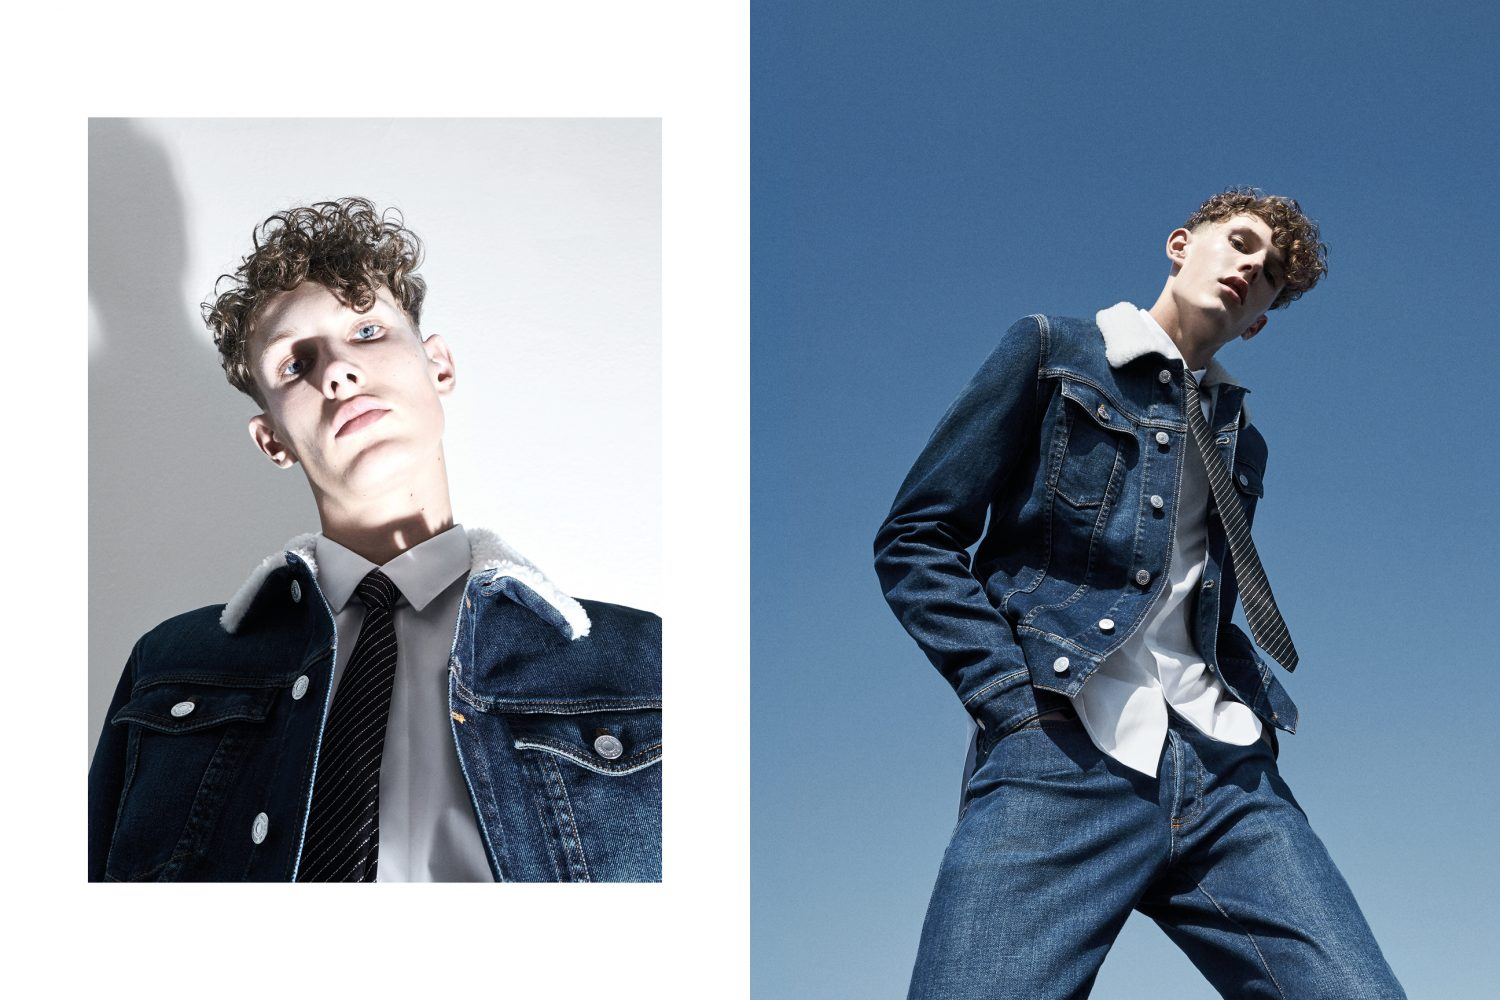 DIOR-DENIM-STYLISME-BY-MAURICIO-NARDI-PICTURE-BY-ALESSIO-BOLZONI-FOR-DIOR-HOMME_3